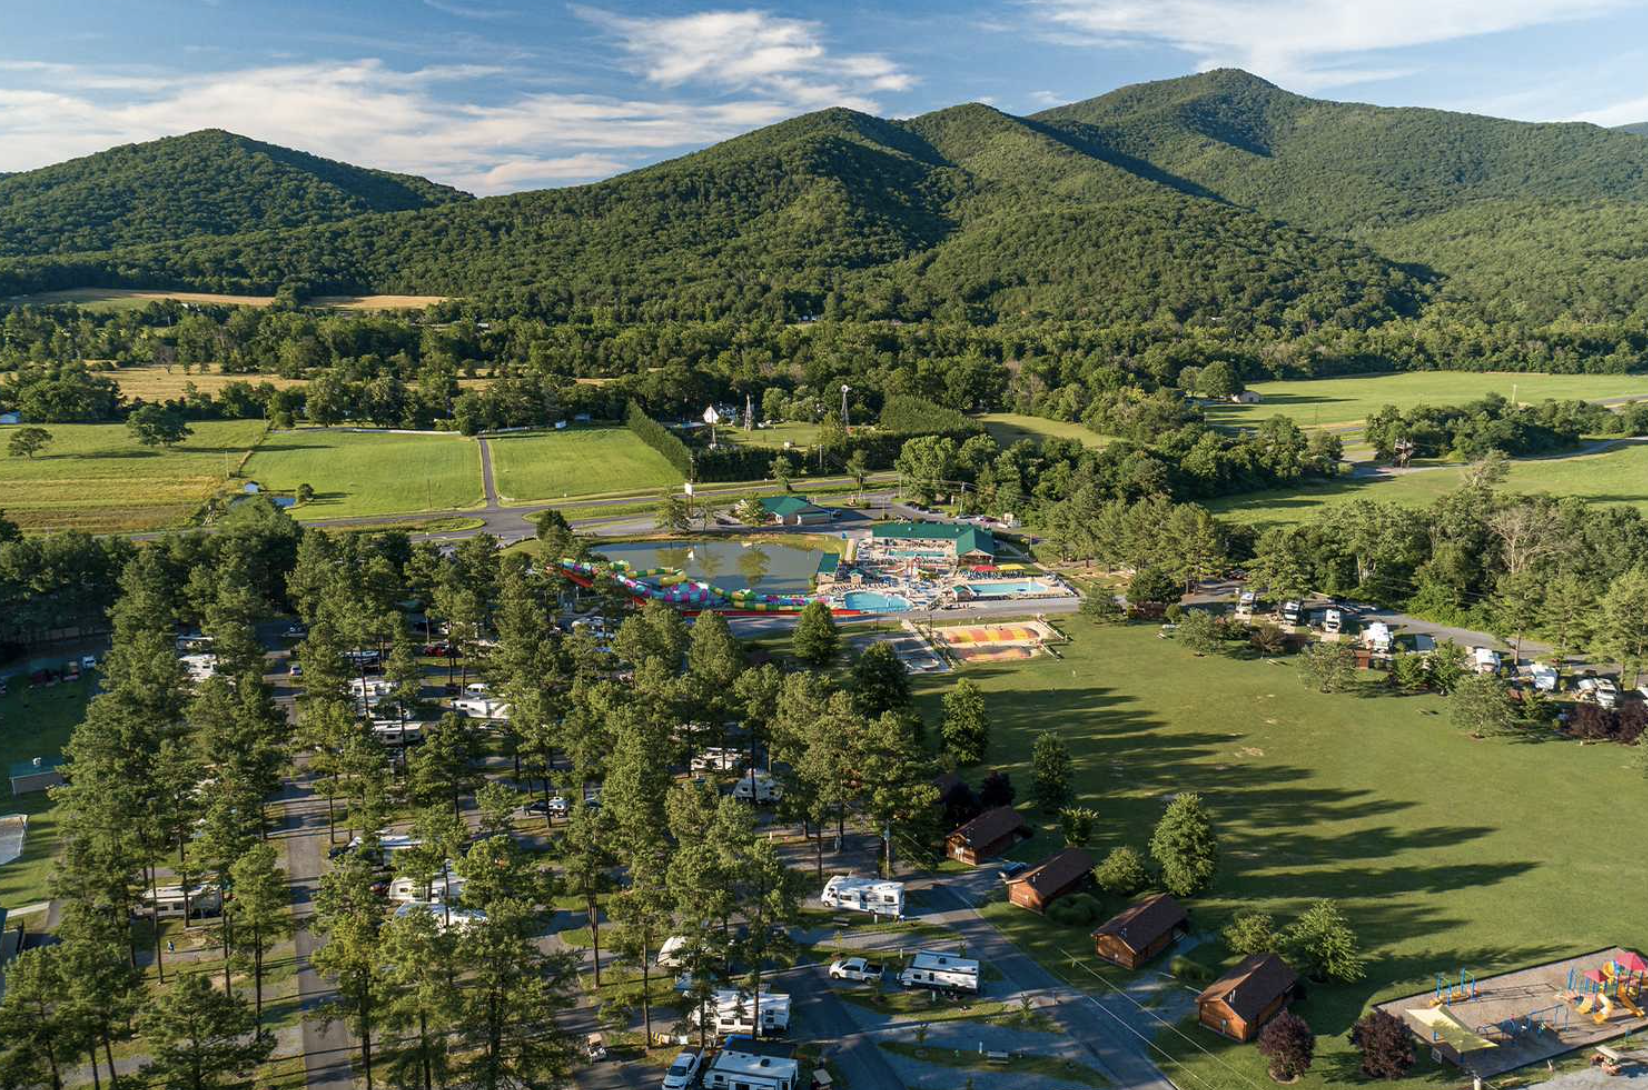 Mountains in the background with aerial view of the campground, RVs, cabins and pool area.